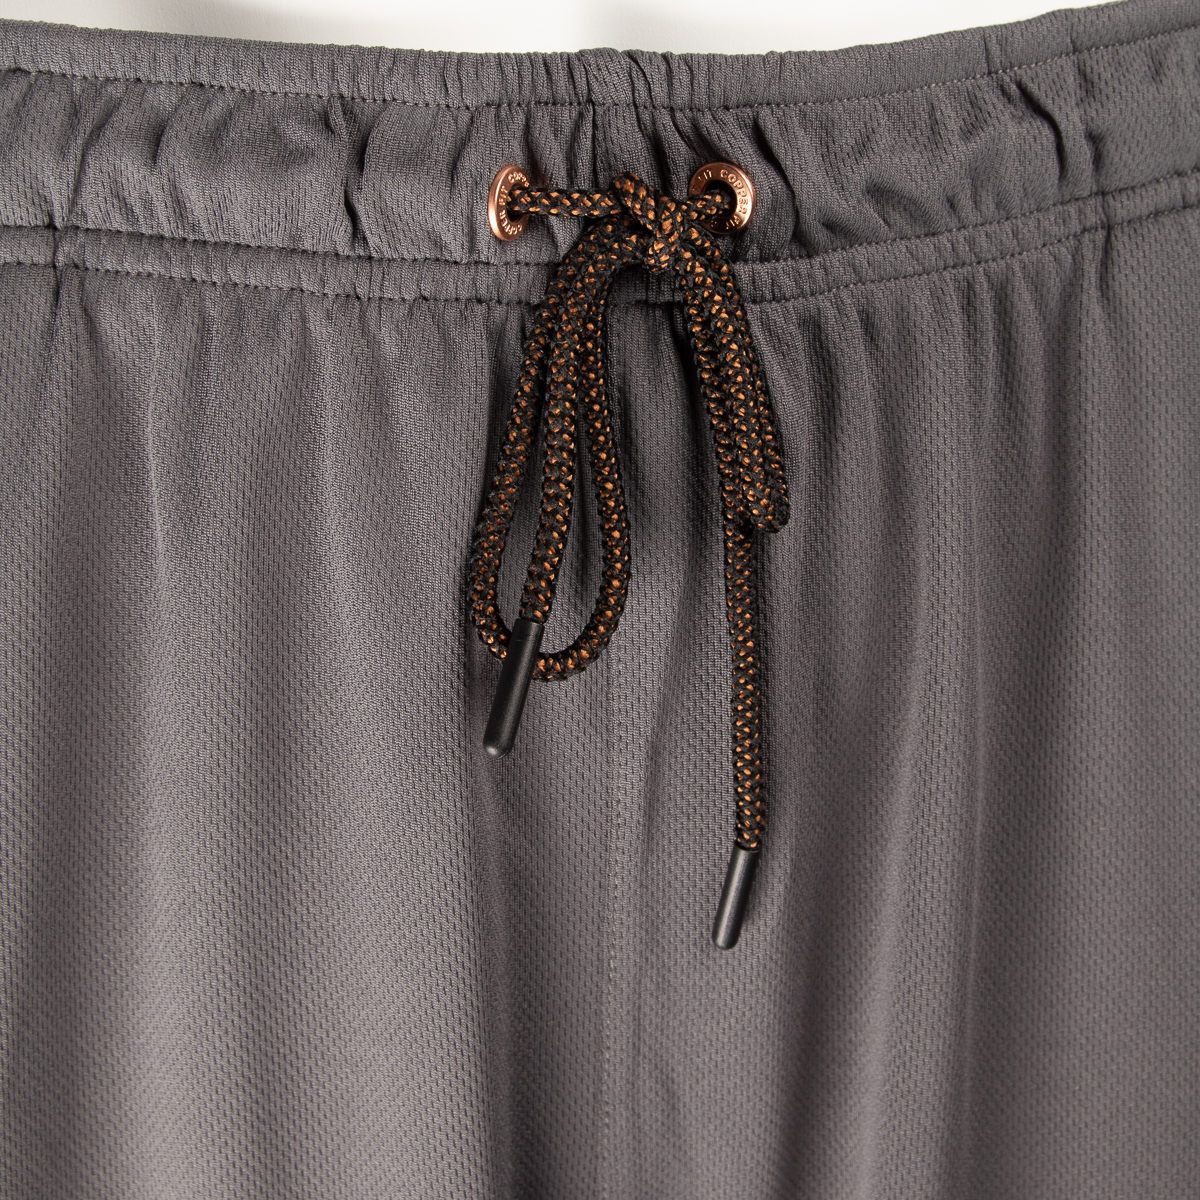 Copper-Fit-Men-s-Big-And-Tall-Athletic-Gym-Shorts-Elastic-Stretch-Waist-Pockets thumbnail 8